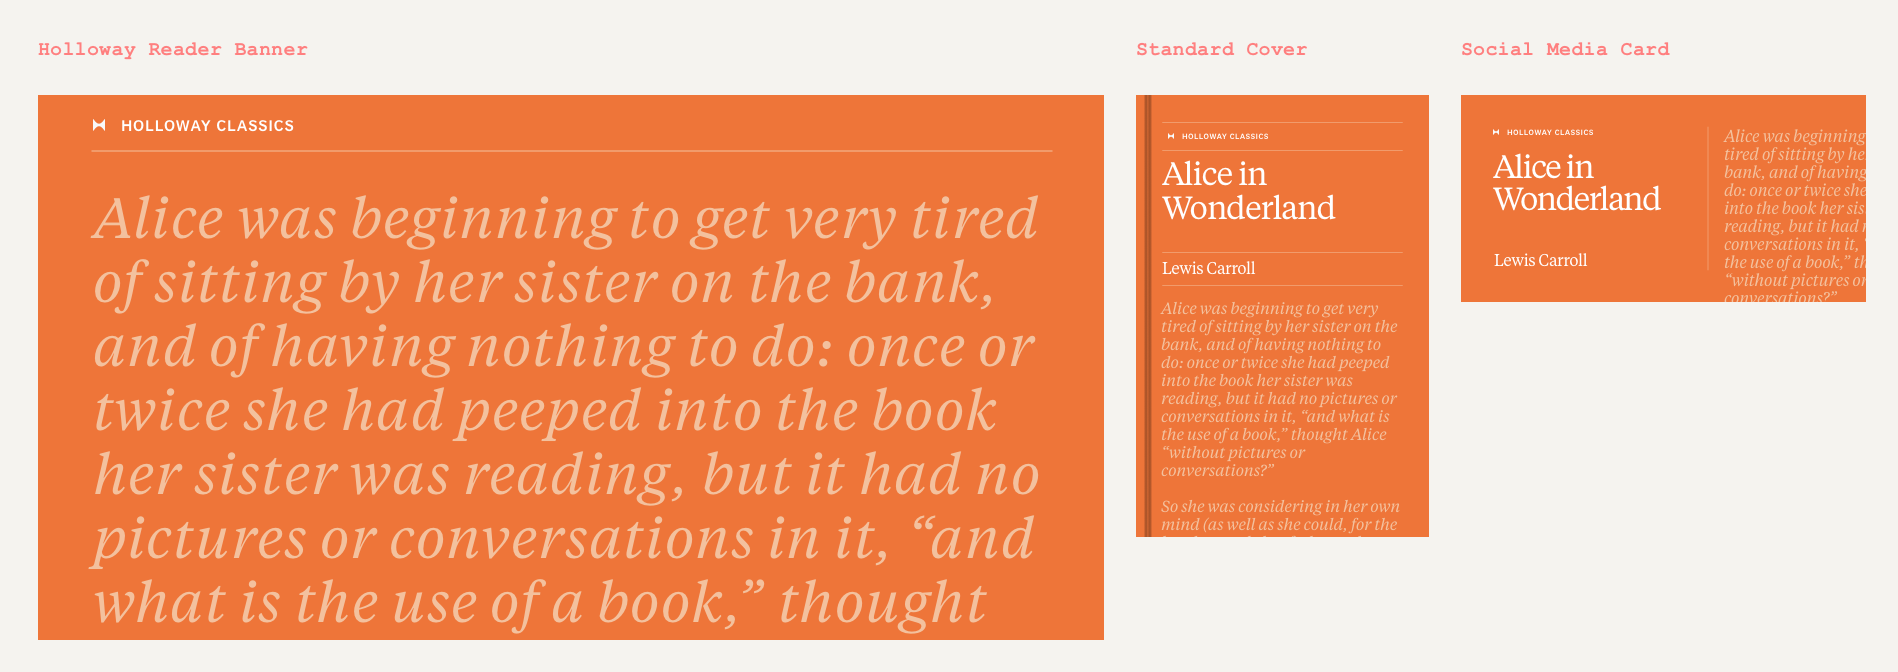 Holloway Classics Design System - Alice in Wonderland